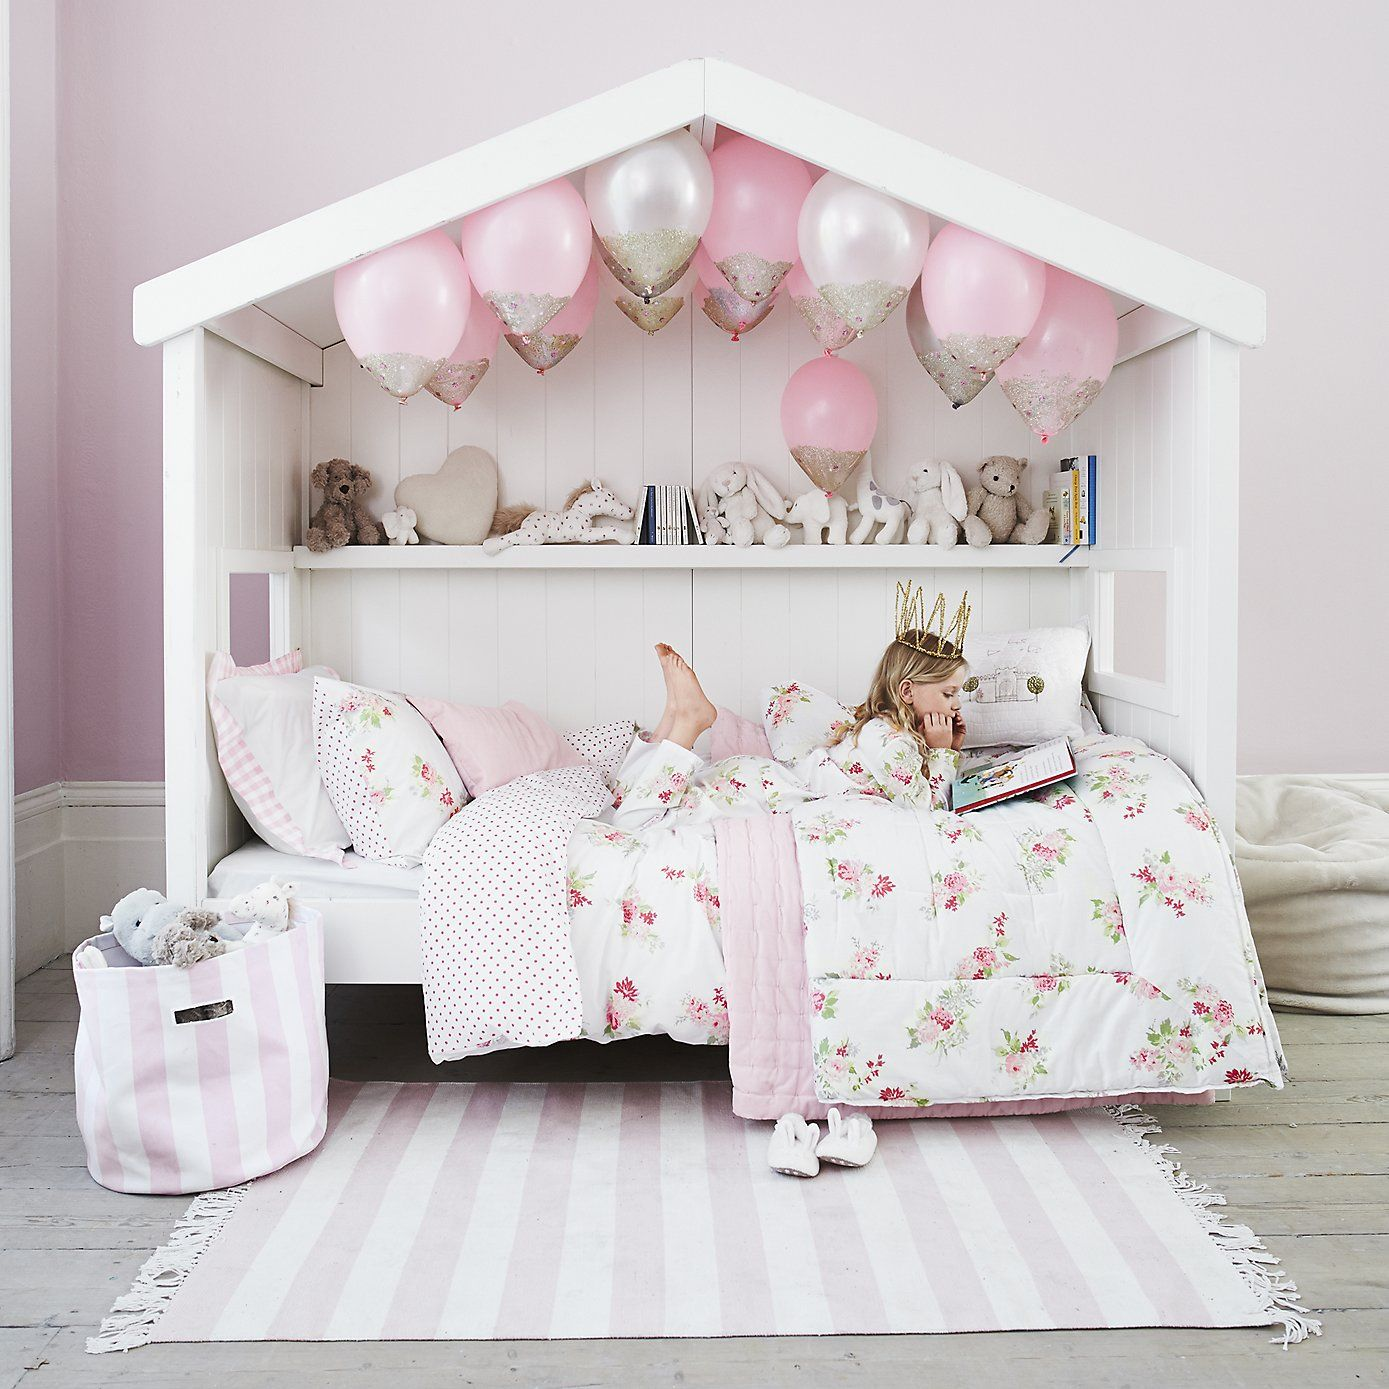 Classic House Day Bed Beds The White Company Girl Room